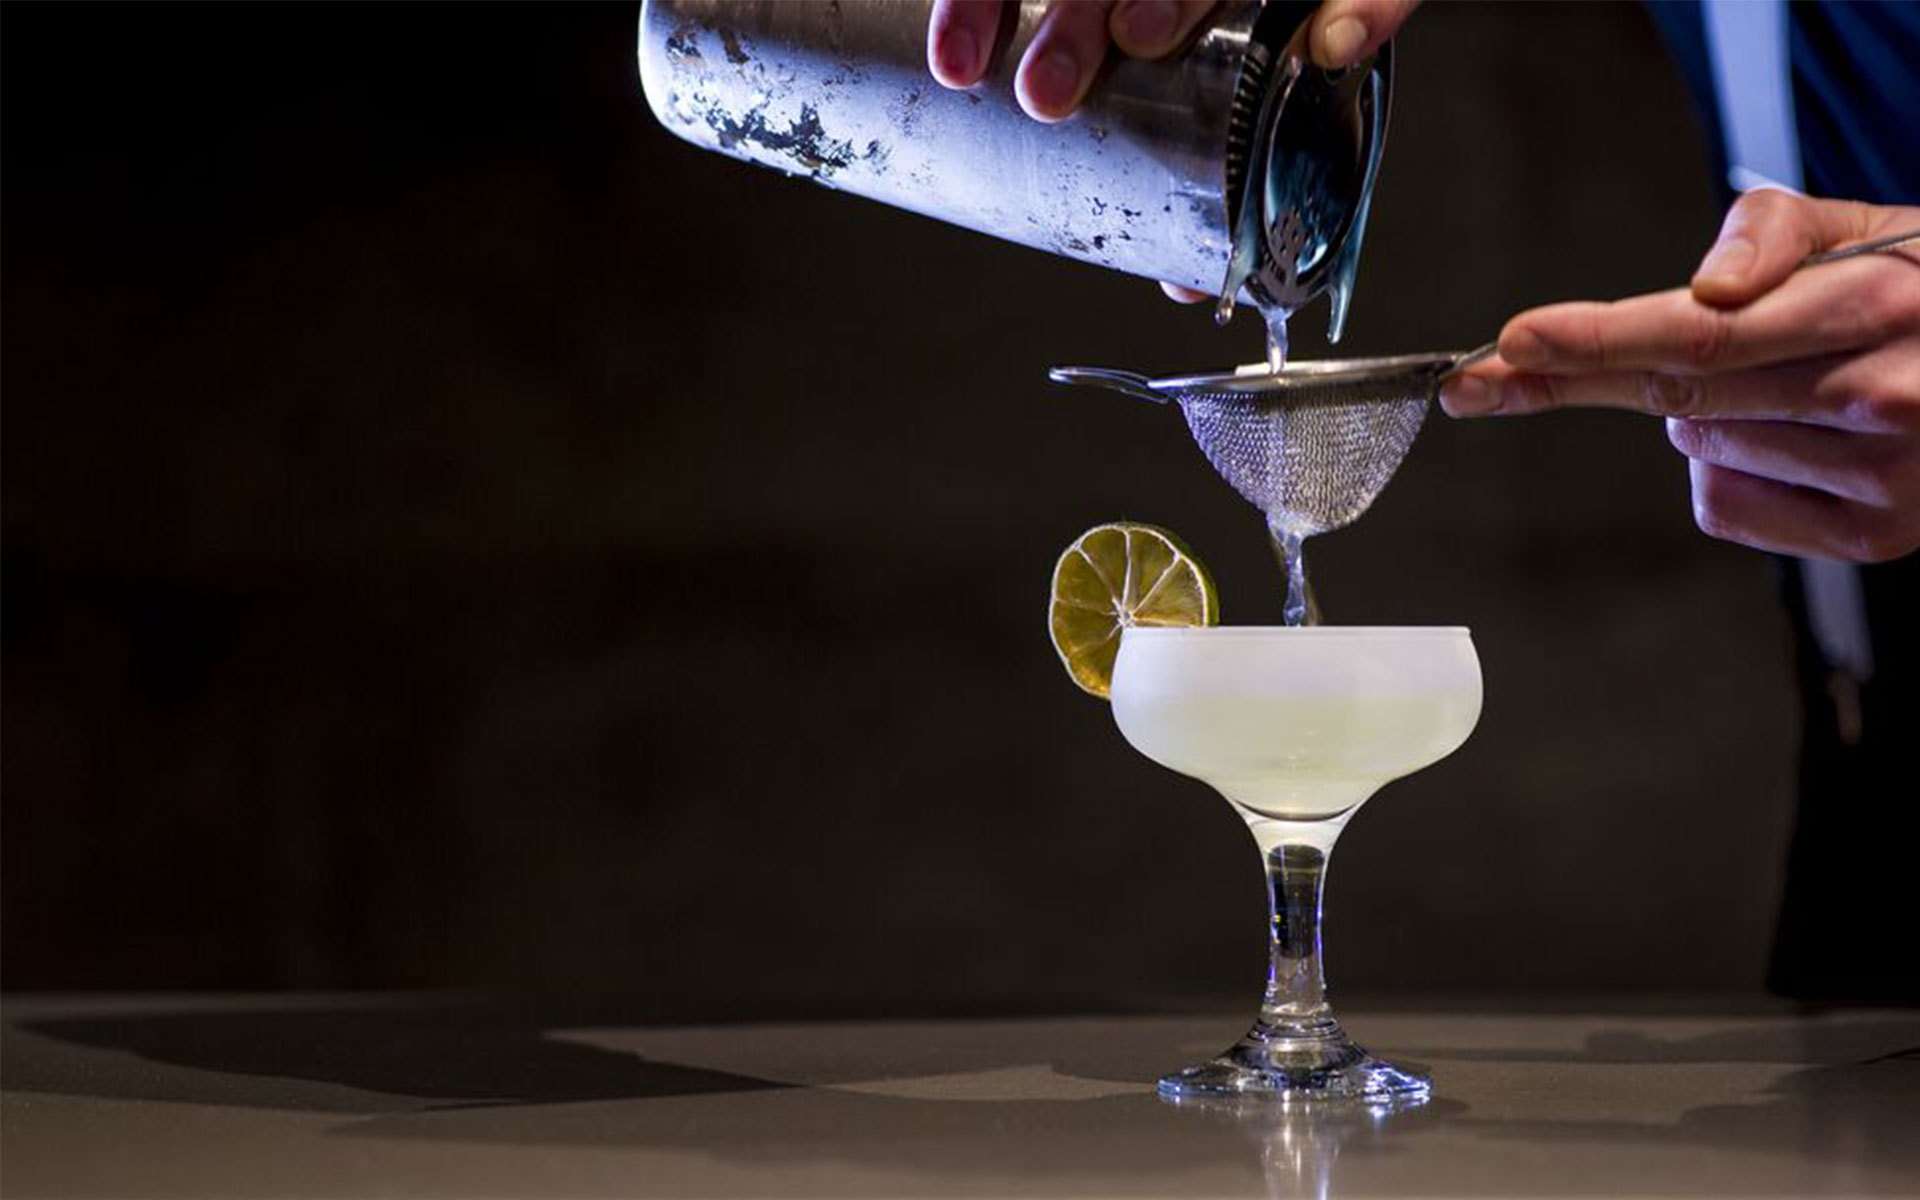 COCKTAIL MASTERCLASS AT DINE